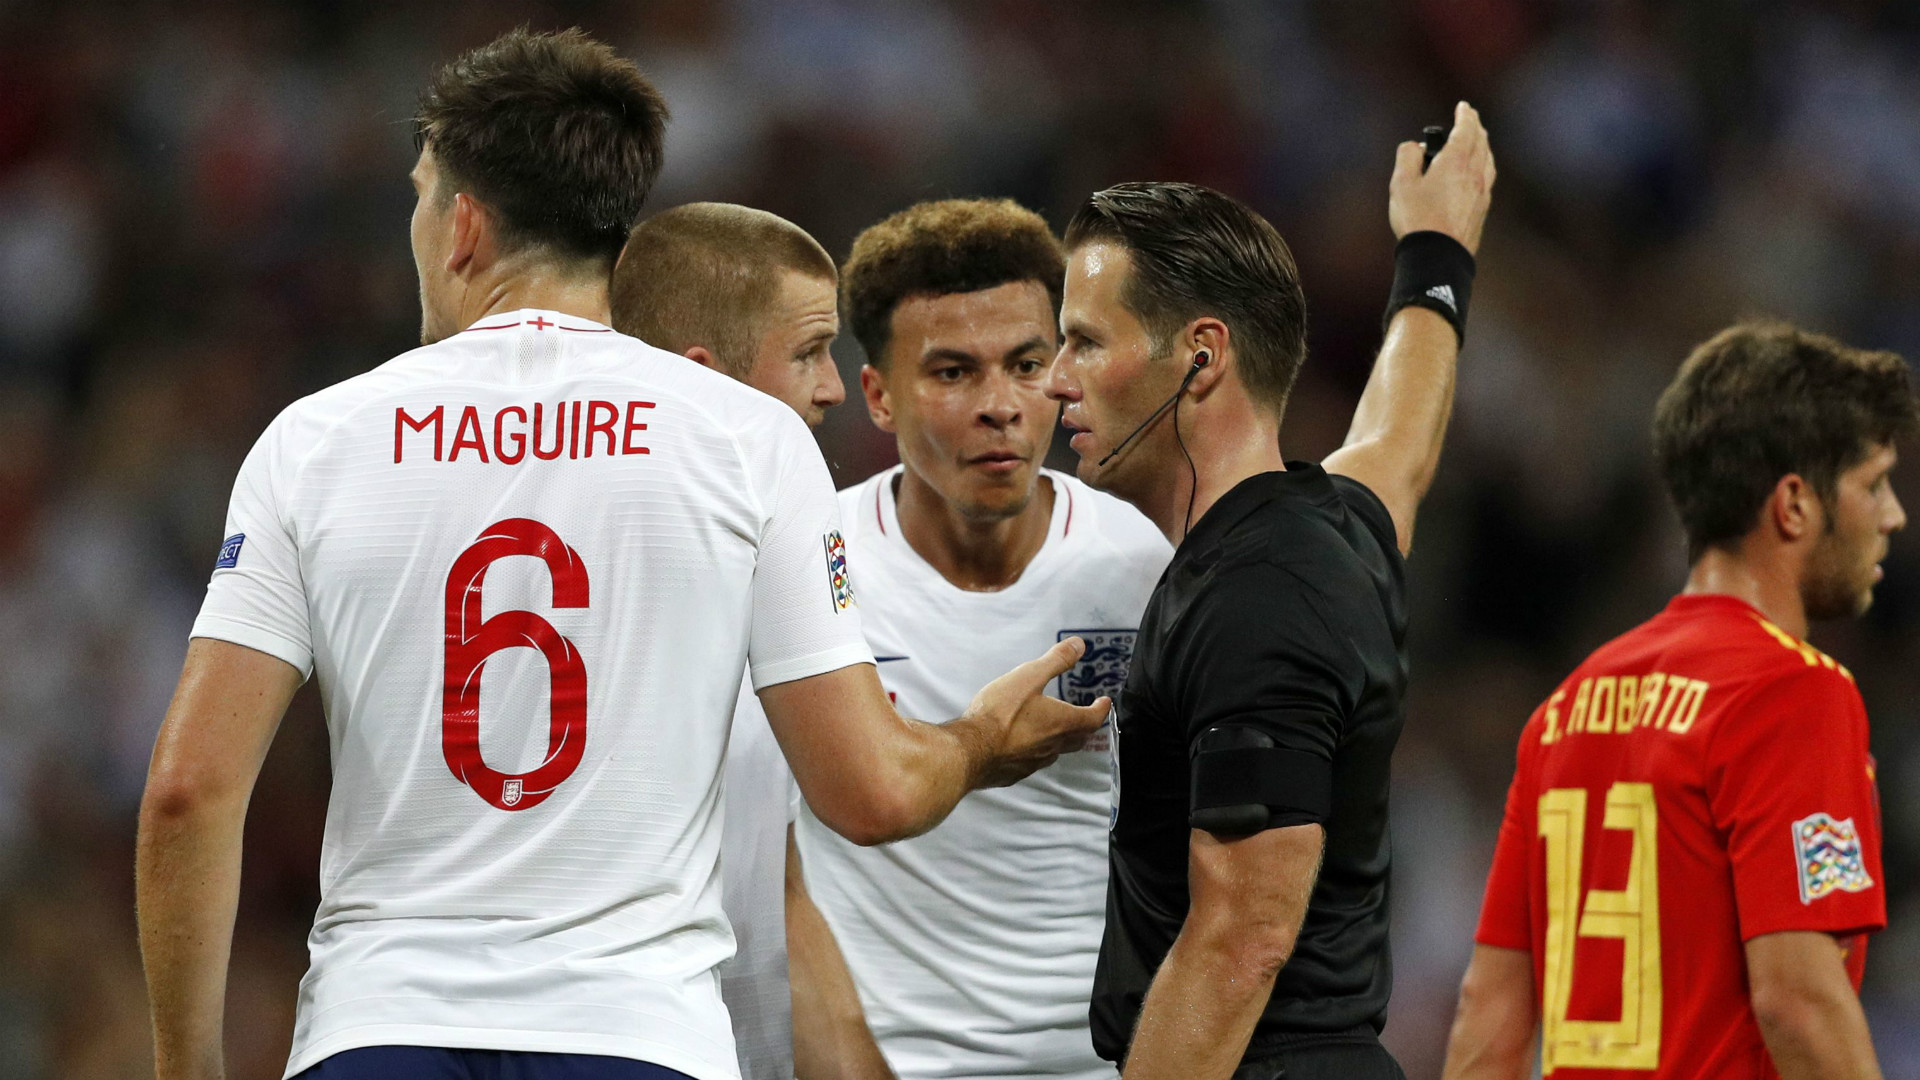 Kane slams ref for disallowed Welbeck goal